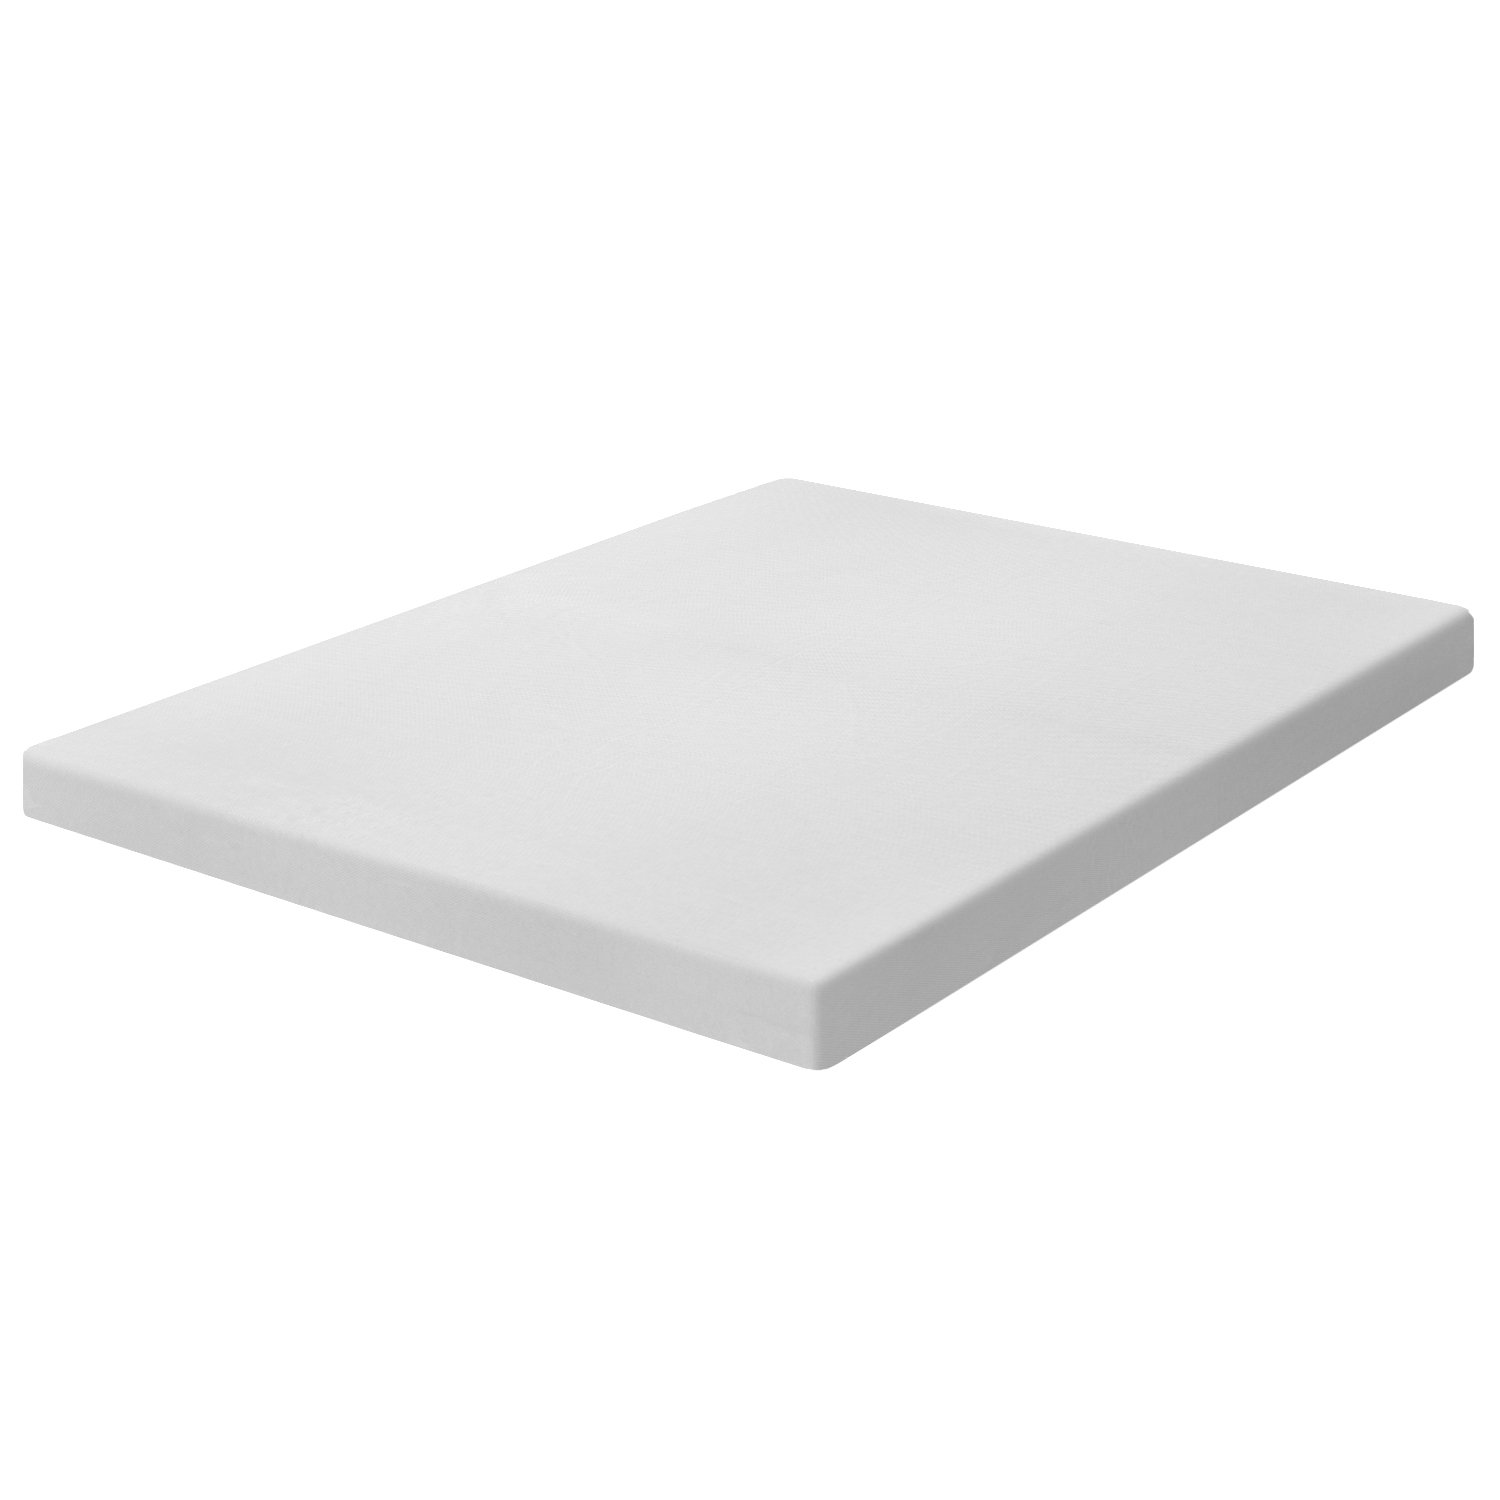 Thin Mattress Topper Whats The Best 4 Inch Memory Foam Mattress Topper